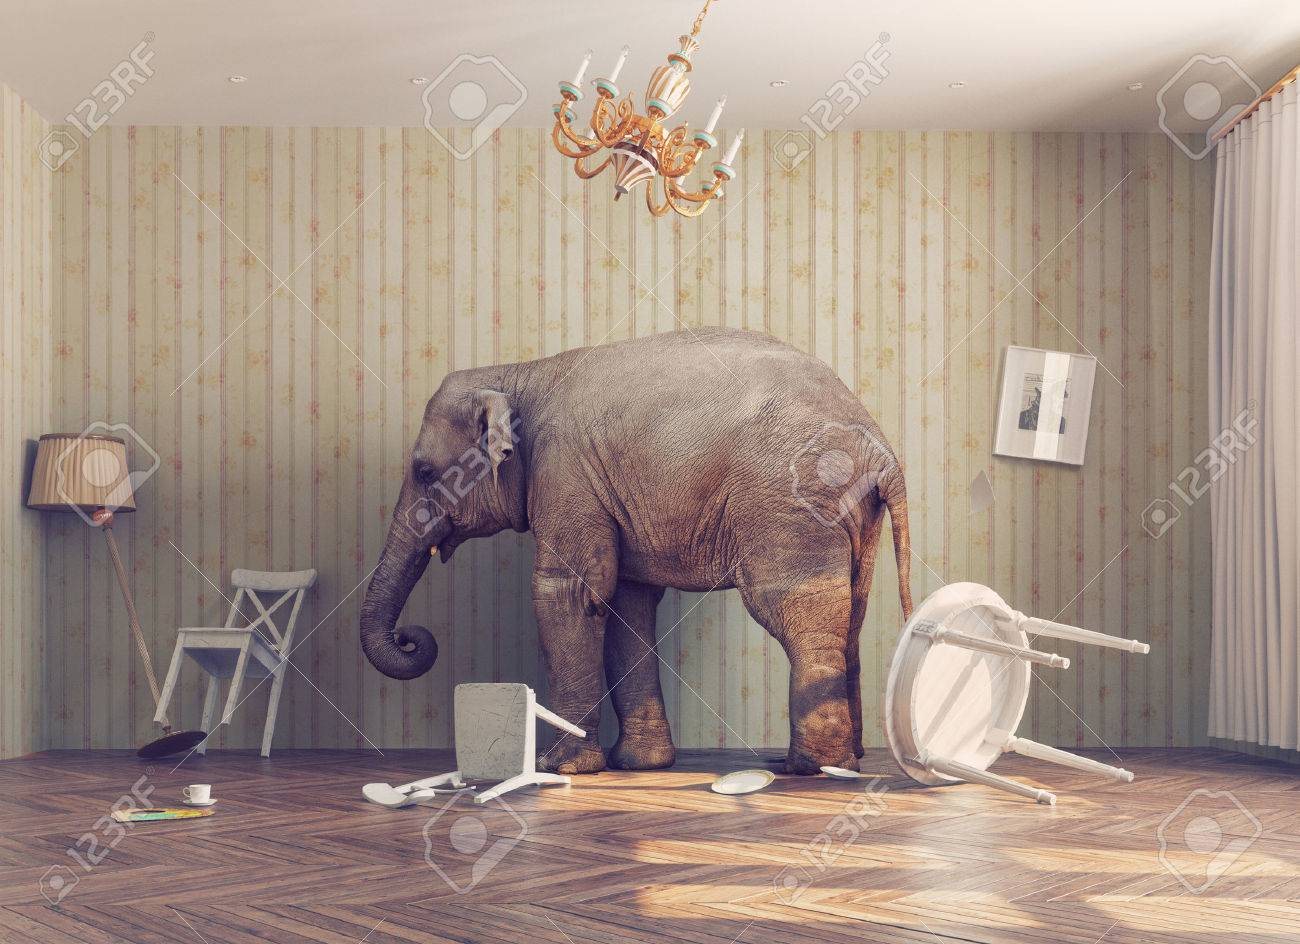 a elephant calm in a room. photo combinated concept Standard-Bild - 47971956